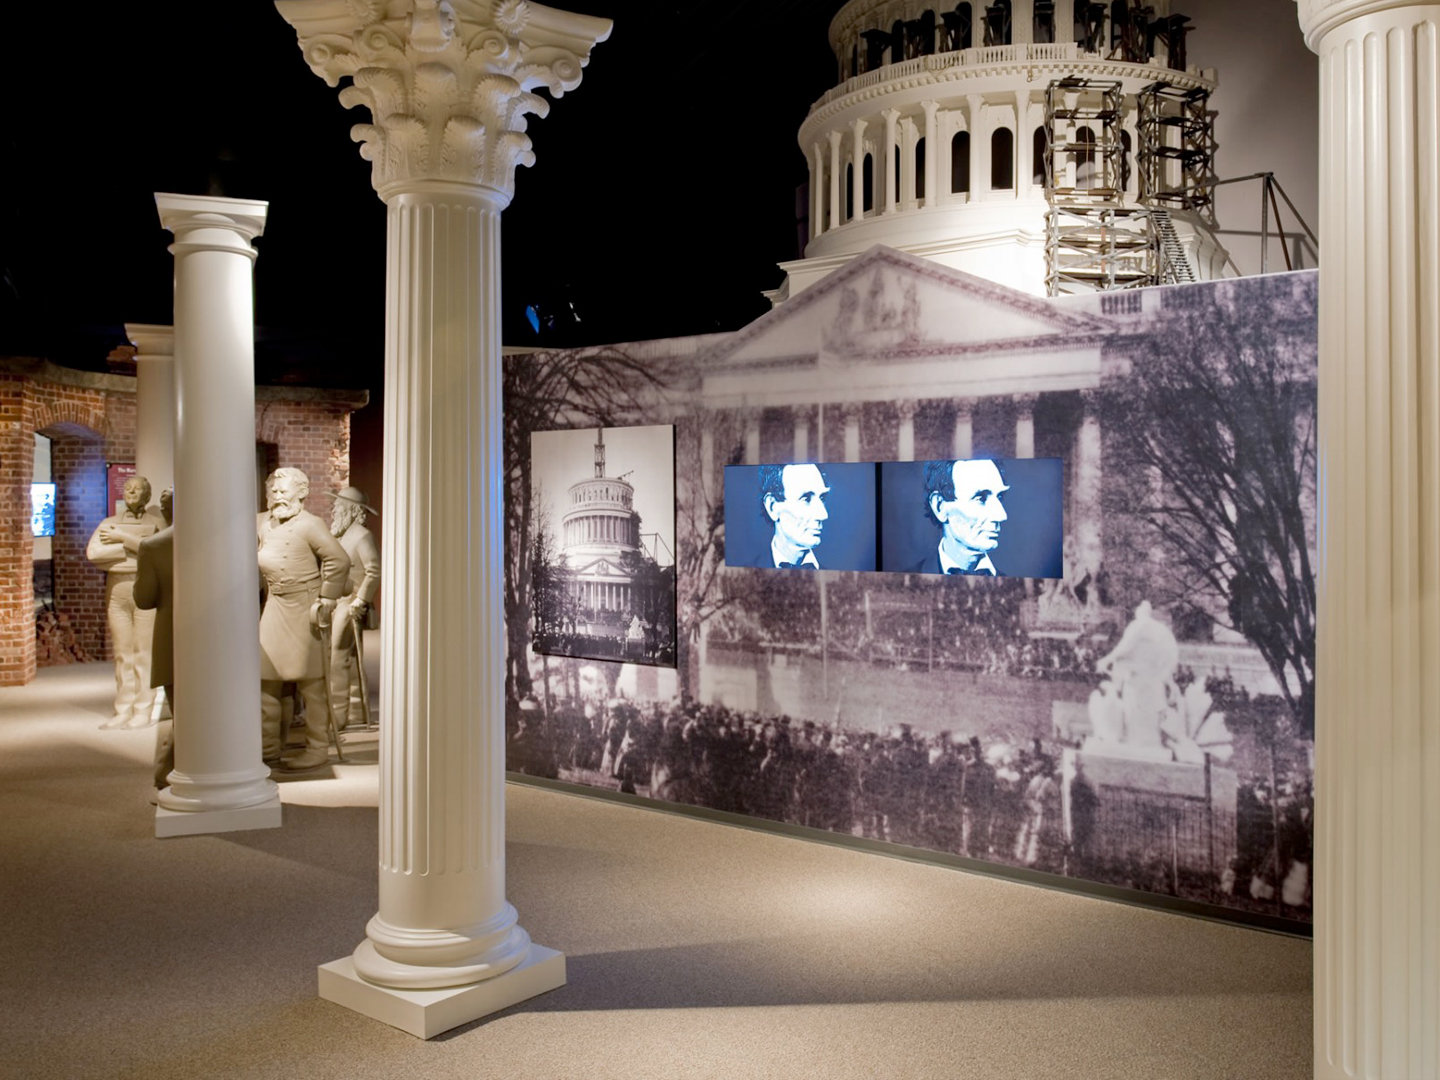 Inside the Ford's Theatre Museum, two television screens display close-up images of Abraham Lincoln's face. The screens are embedded in a display that is a large-scale photograph of the partially constructed U.S. Capitol dome taken during the Civil War. In front of the display are three white columns, designed to evoke the Capitol. Behind the display is a model of the partially constructed dome.